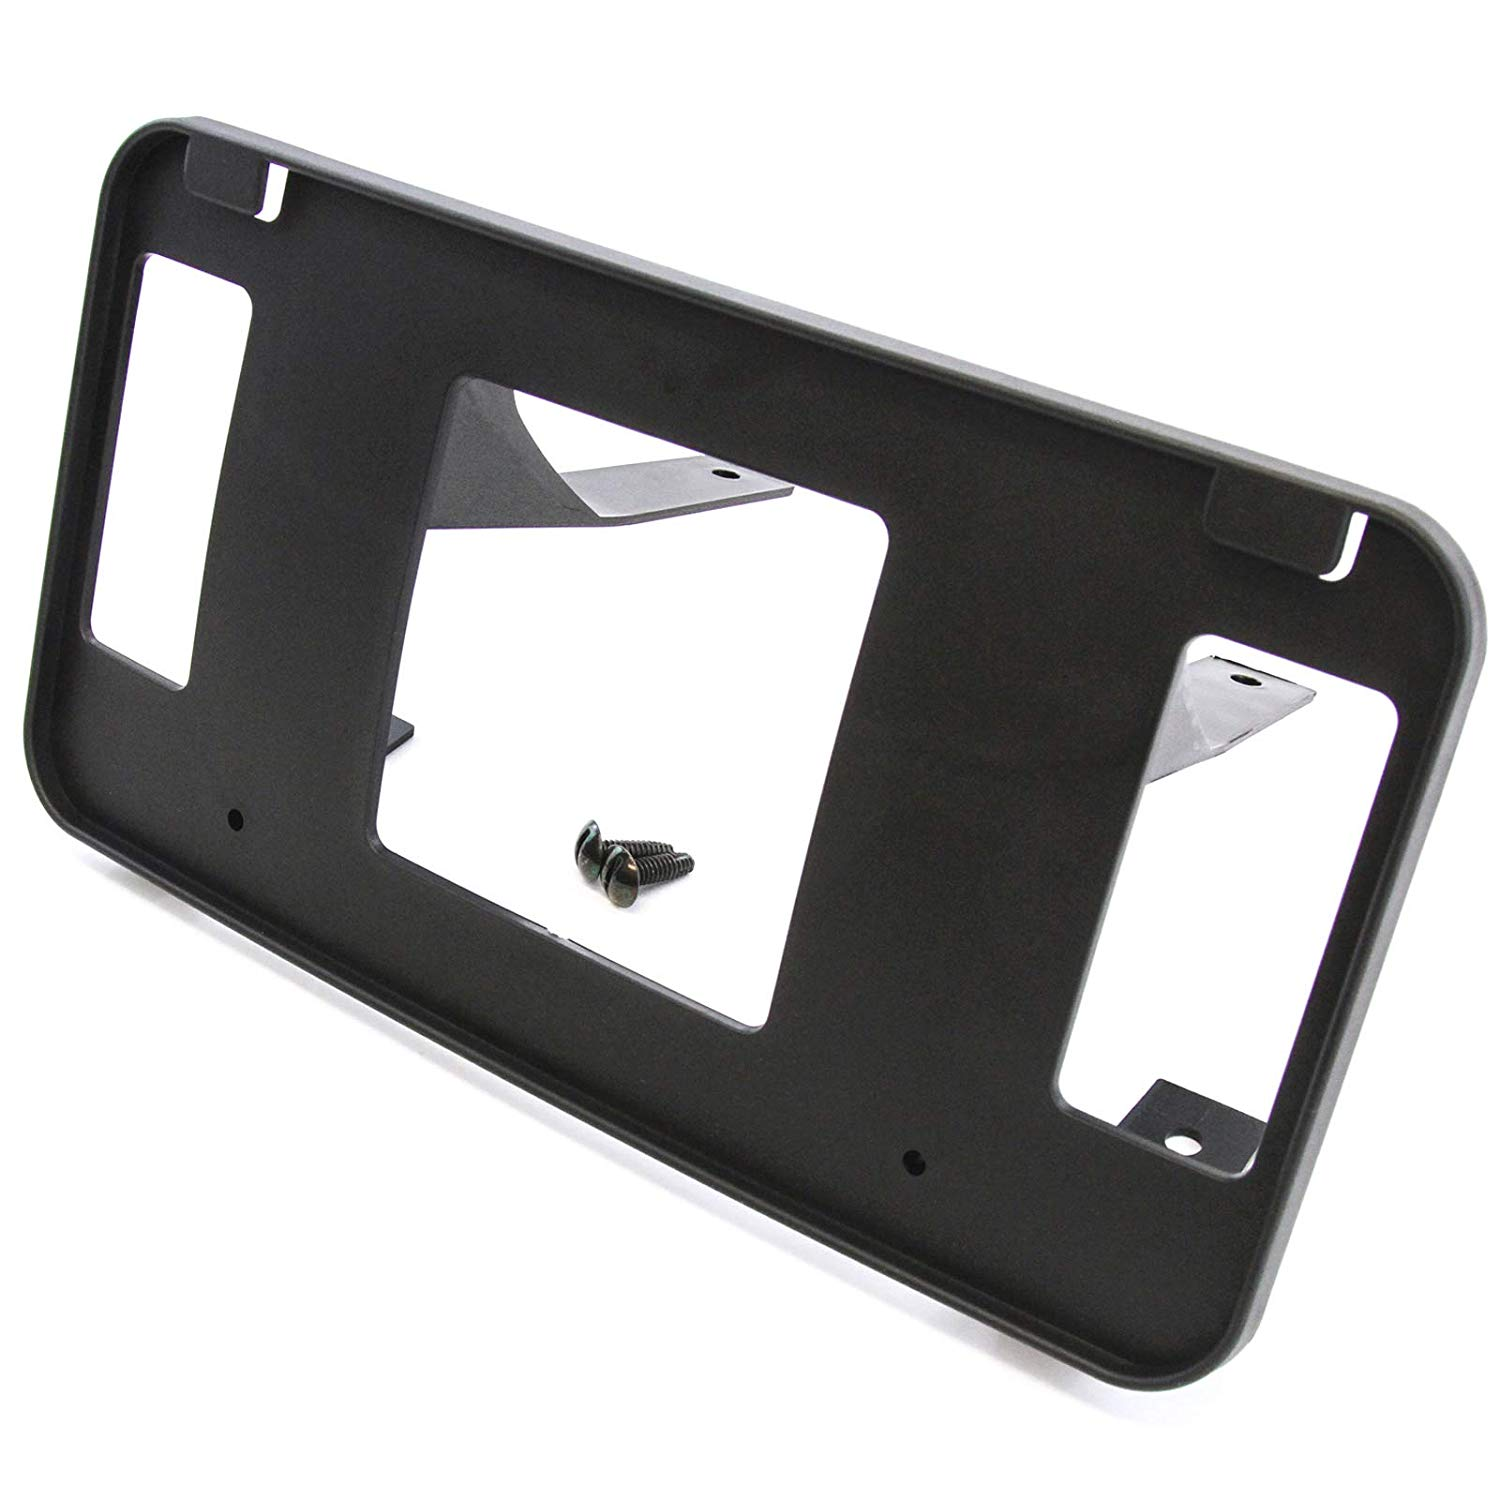 Red Hound Auto Front License Plate Bumper Mounting Bracket Compatible with Ford (F-150 1993-2003, Expedition 1997-2002) Frame Holder (NOT Compatible with Harley Davidson or Crew Cab Models)